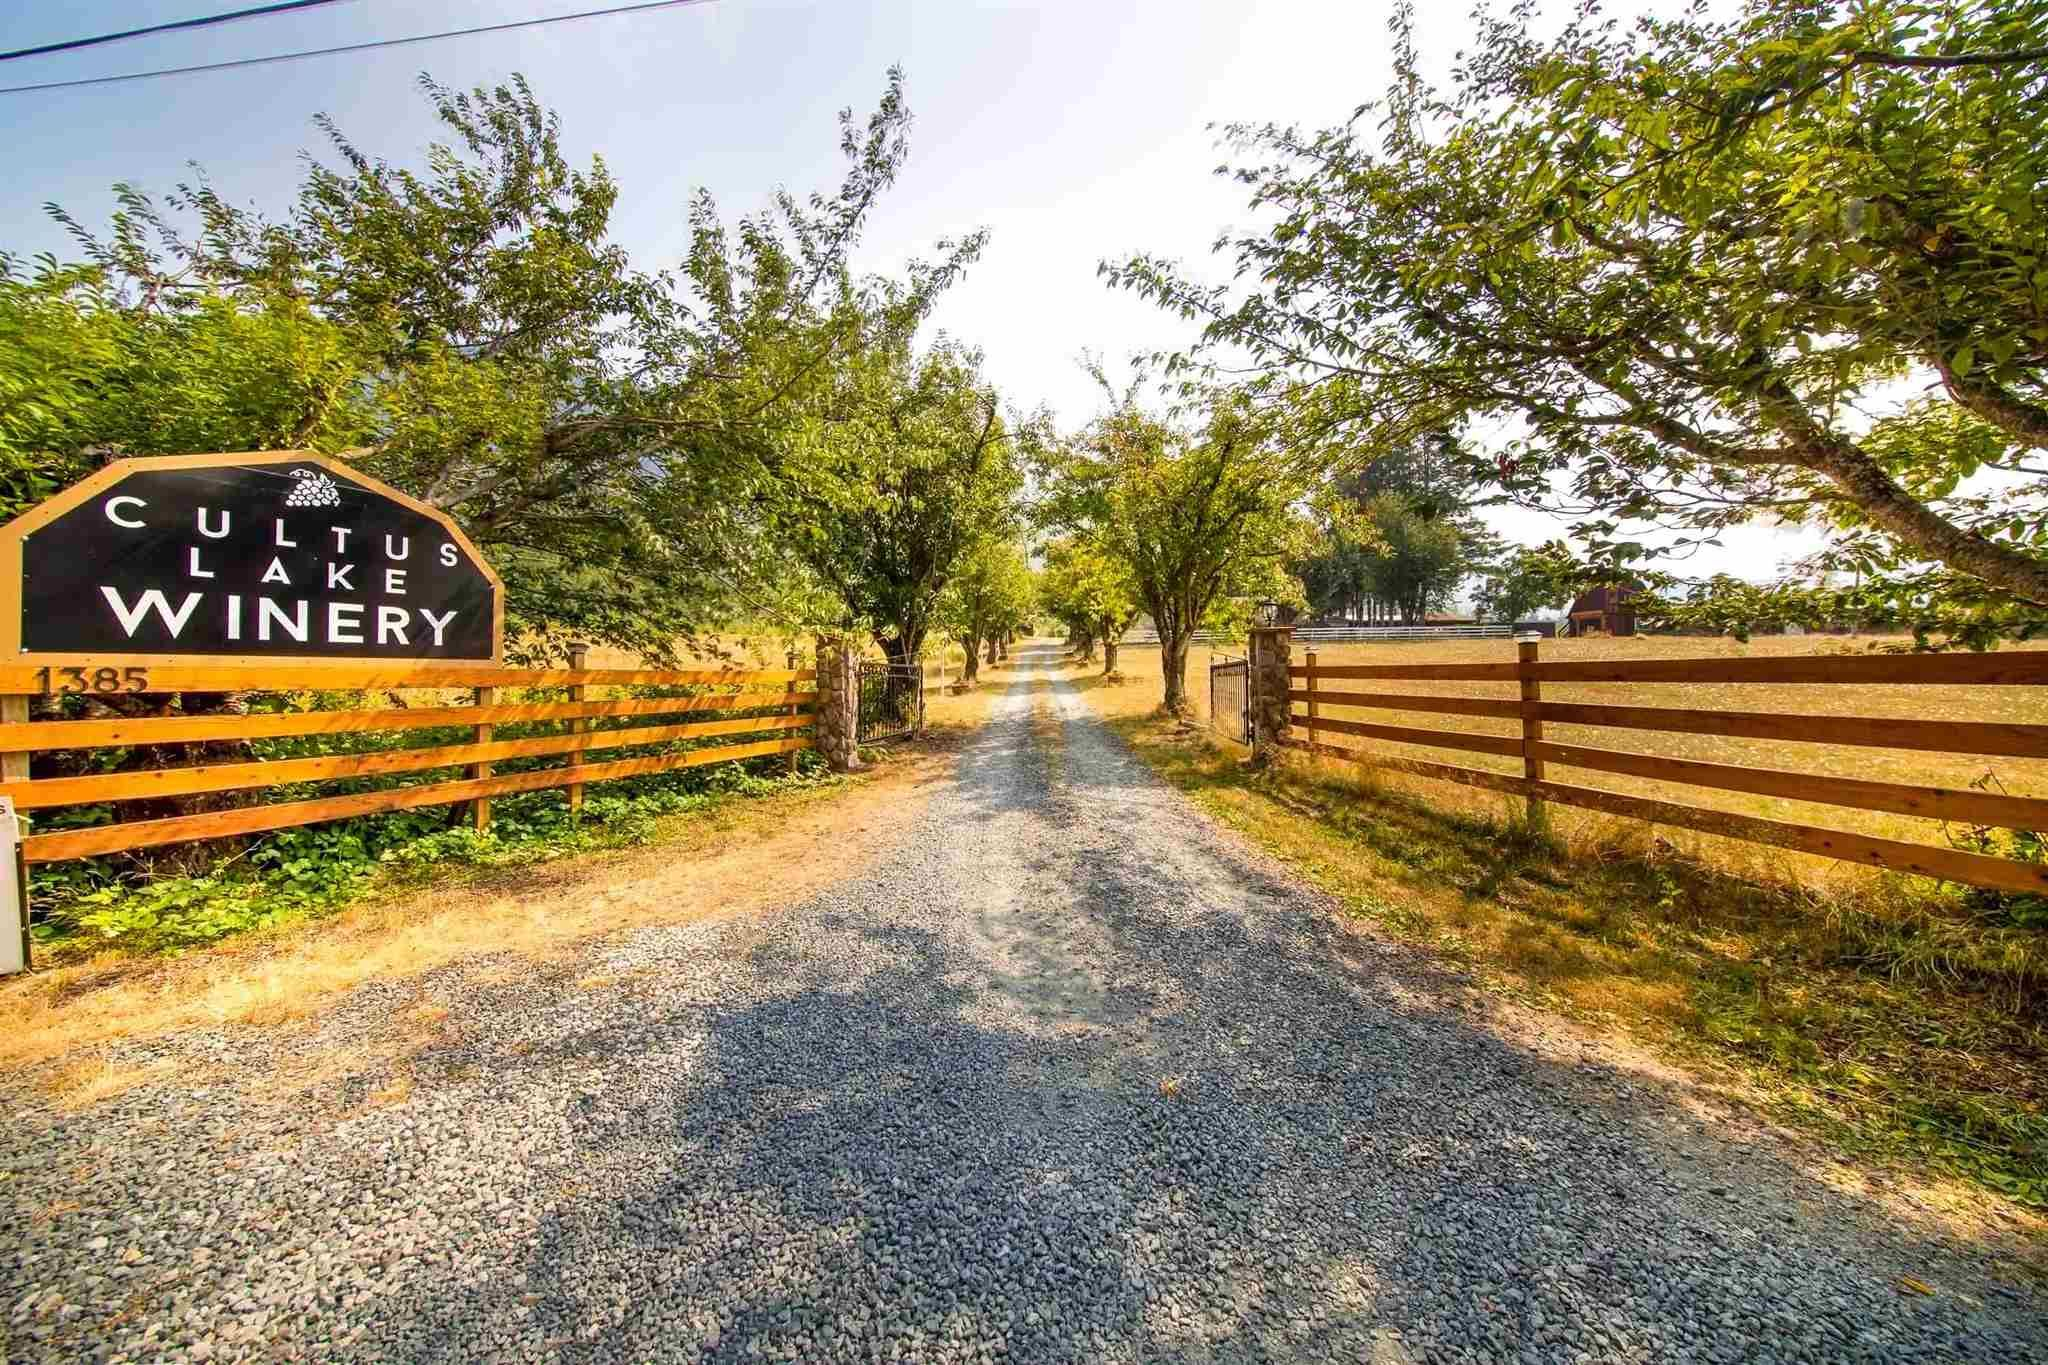 Main Photo: 1385 FROST Road: Columbia Valley Agri-Business for sale (Cultus Lake)  : MLS®# C8039592